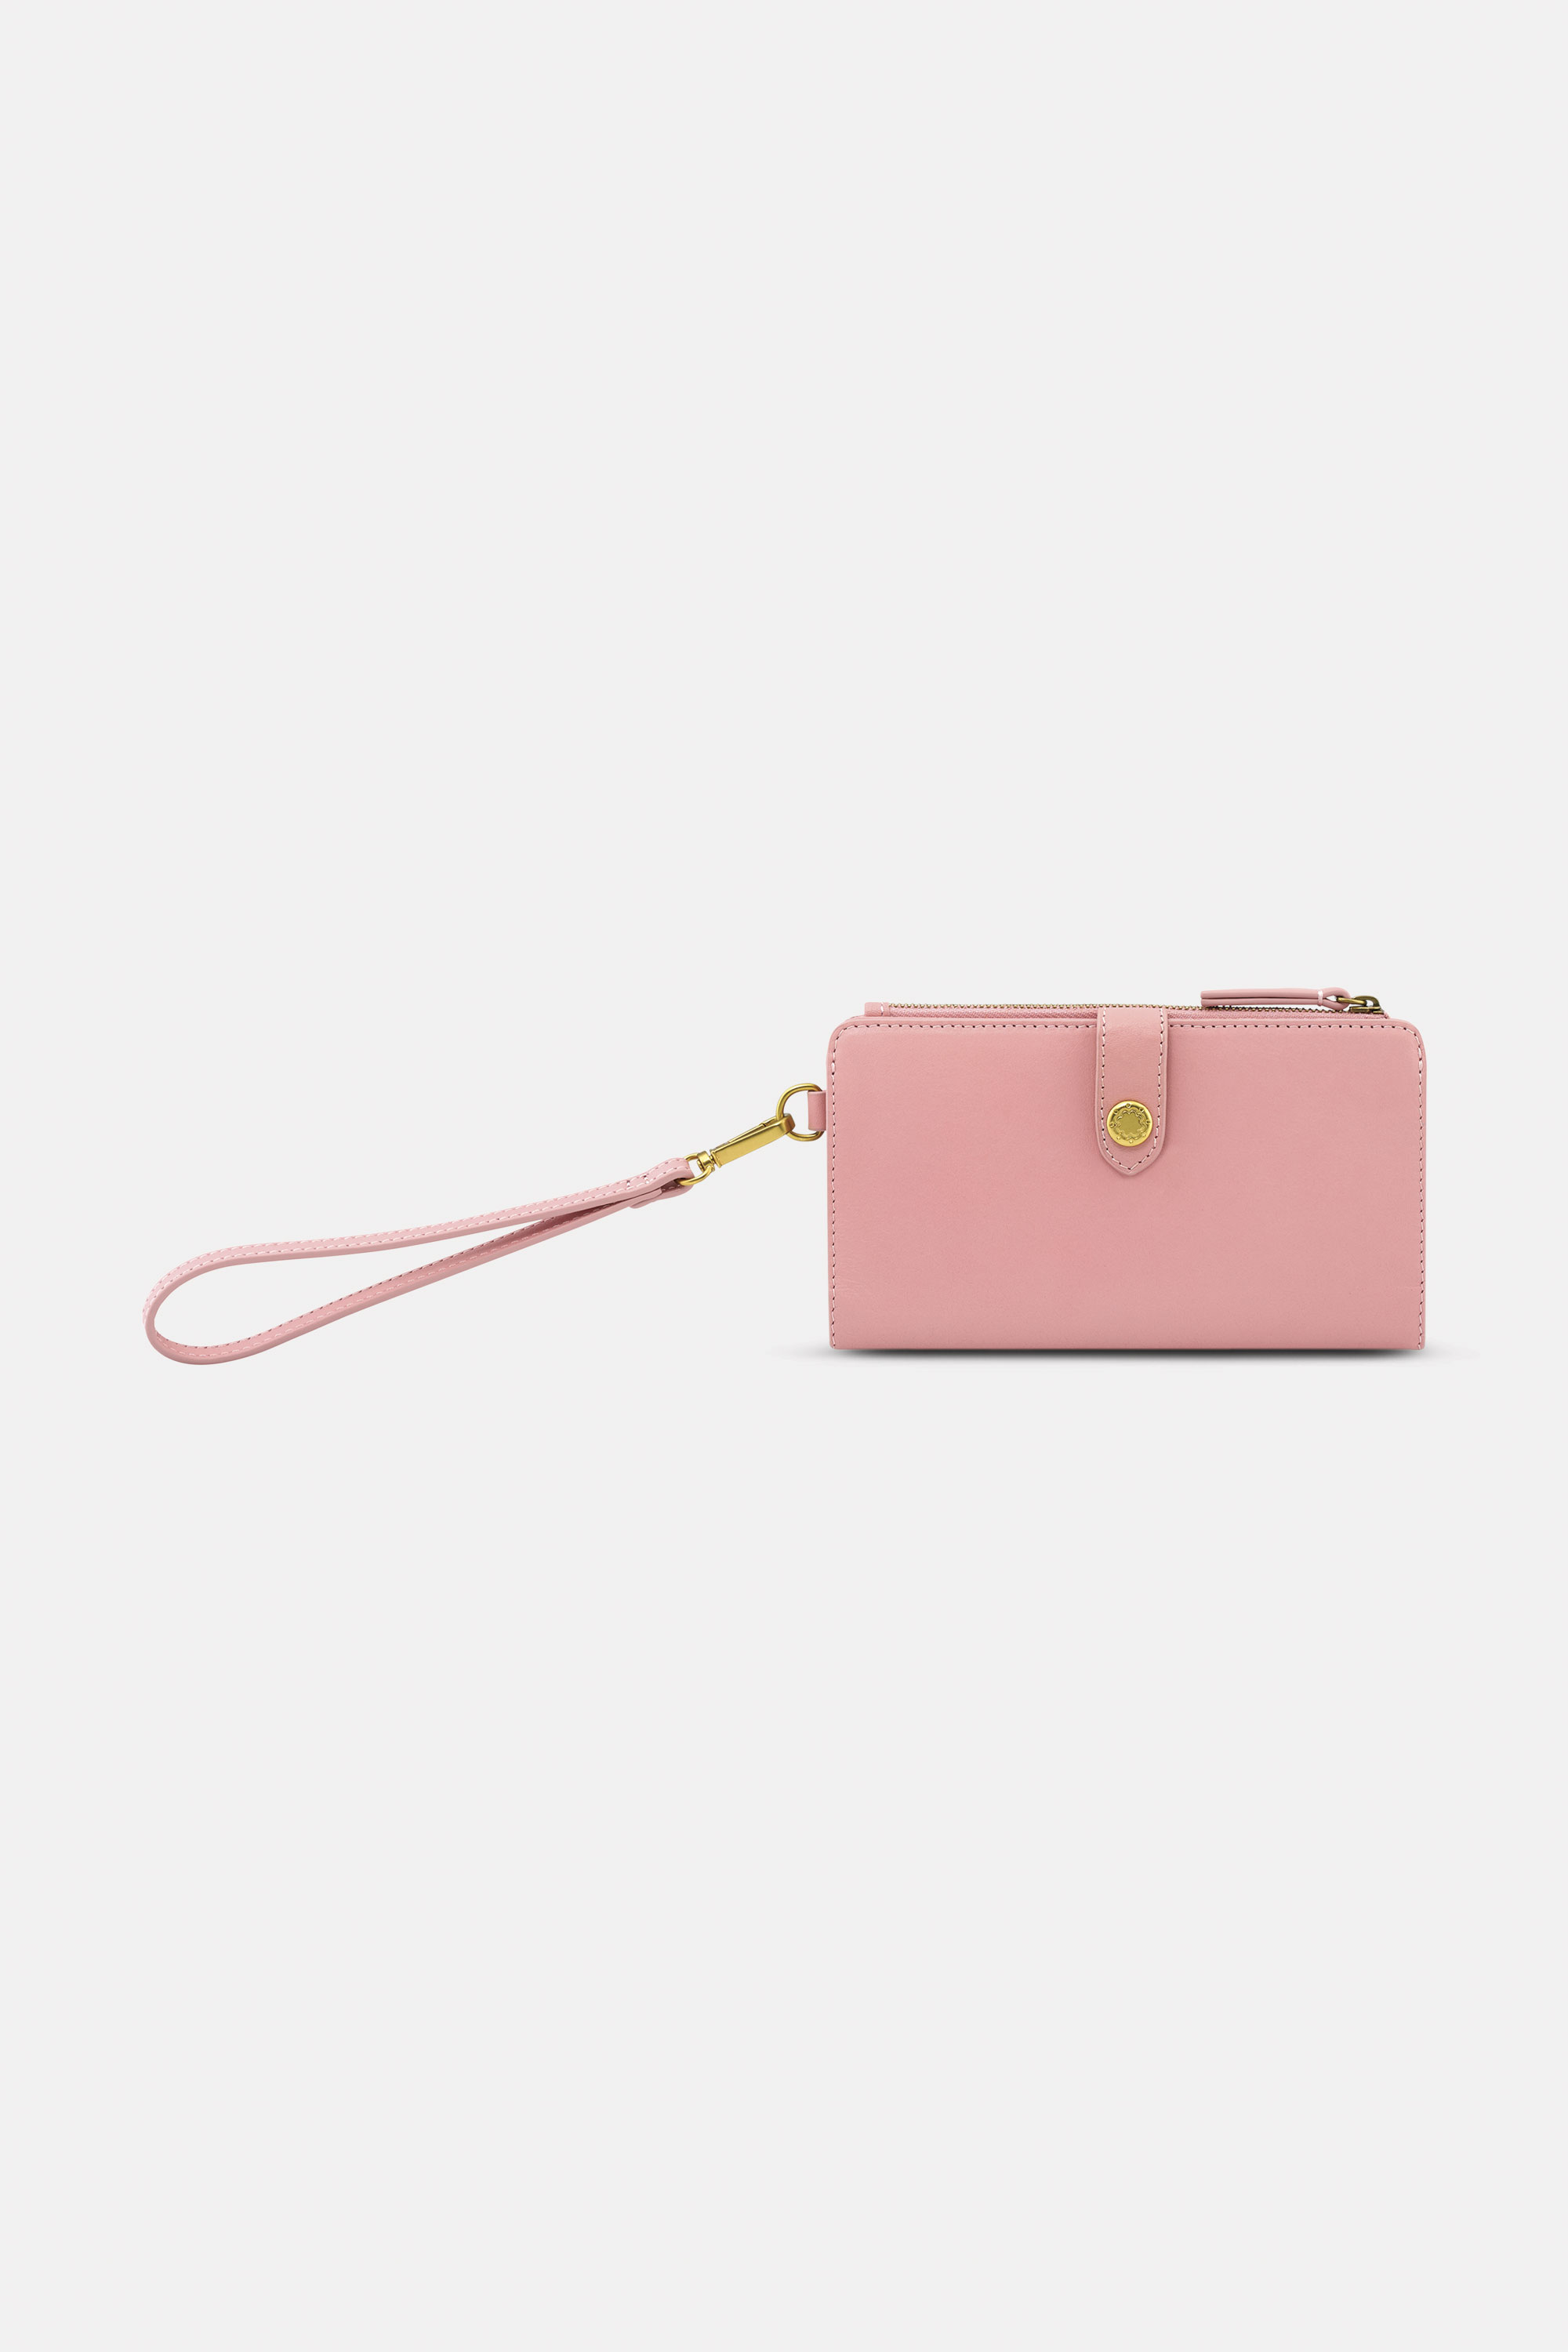 Cath Kidston Leather Phone Wallet in Pink, Solid